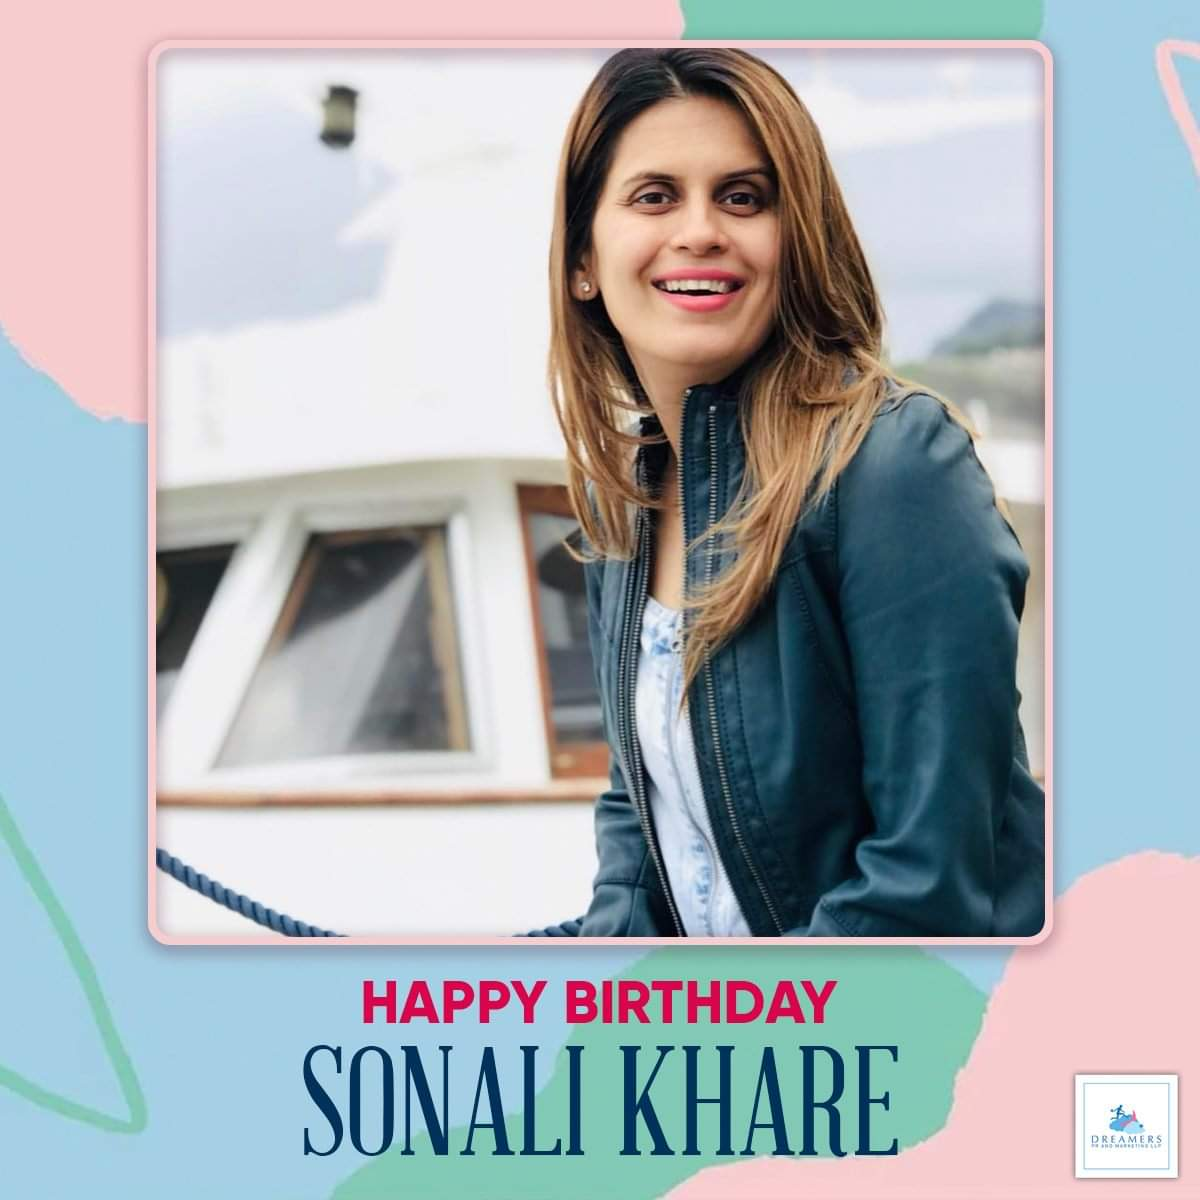 May you continue to spread the mantras of happiness, fitness wherever you go! Happiest Birthday @KhareSonali!! Tons of Love ❤️❤️🤗  #SonaliKhare #HappyBirthday #BestWishes #Celebrations #Actress #FitnessJunkie #Movies #Shows #Performer #DreamersPR https://t.co/Td6uVIJUGz